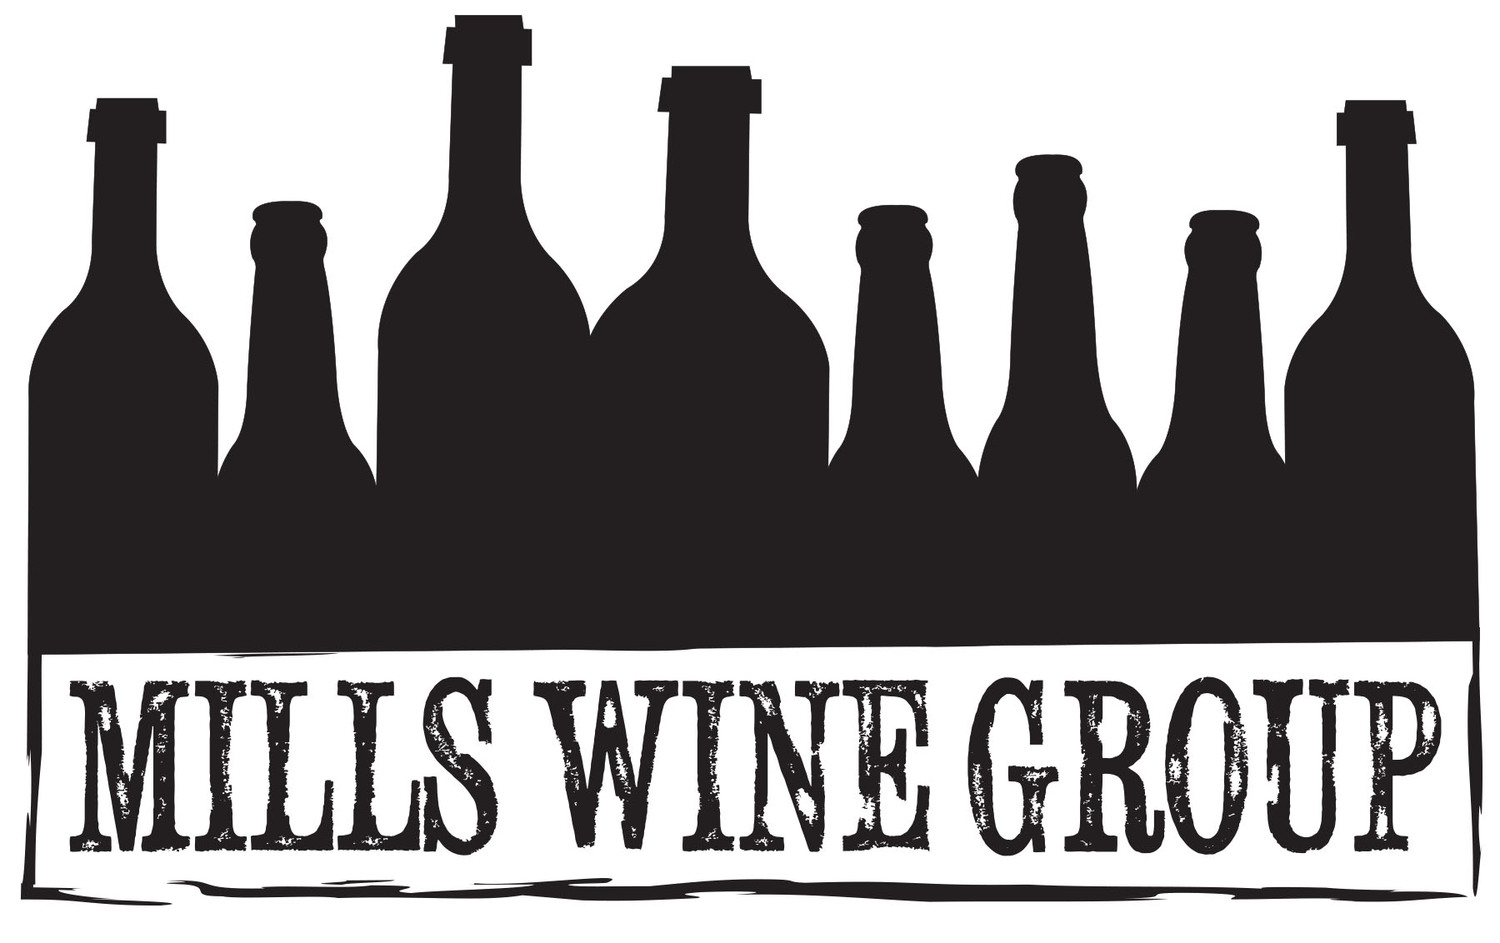 Mills Wine Group